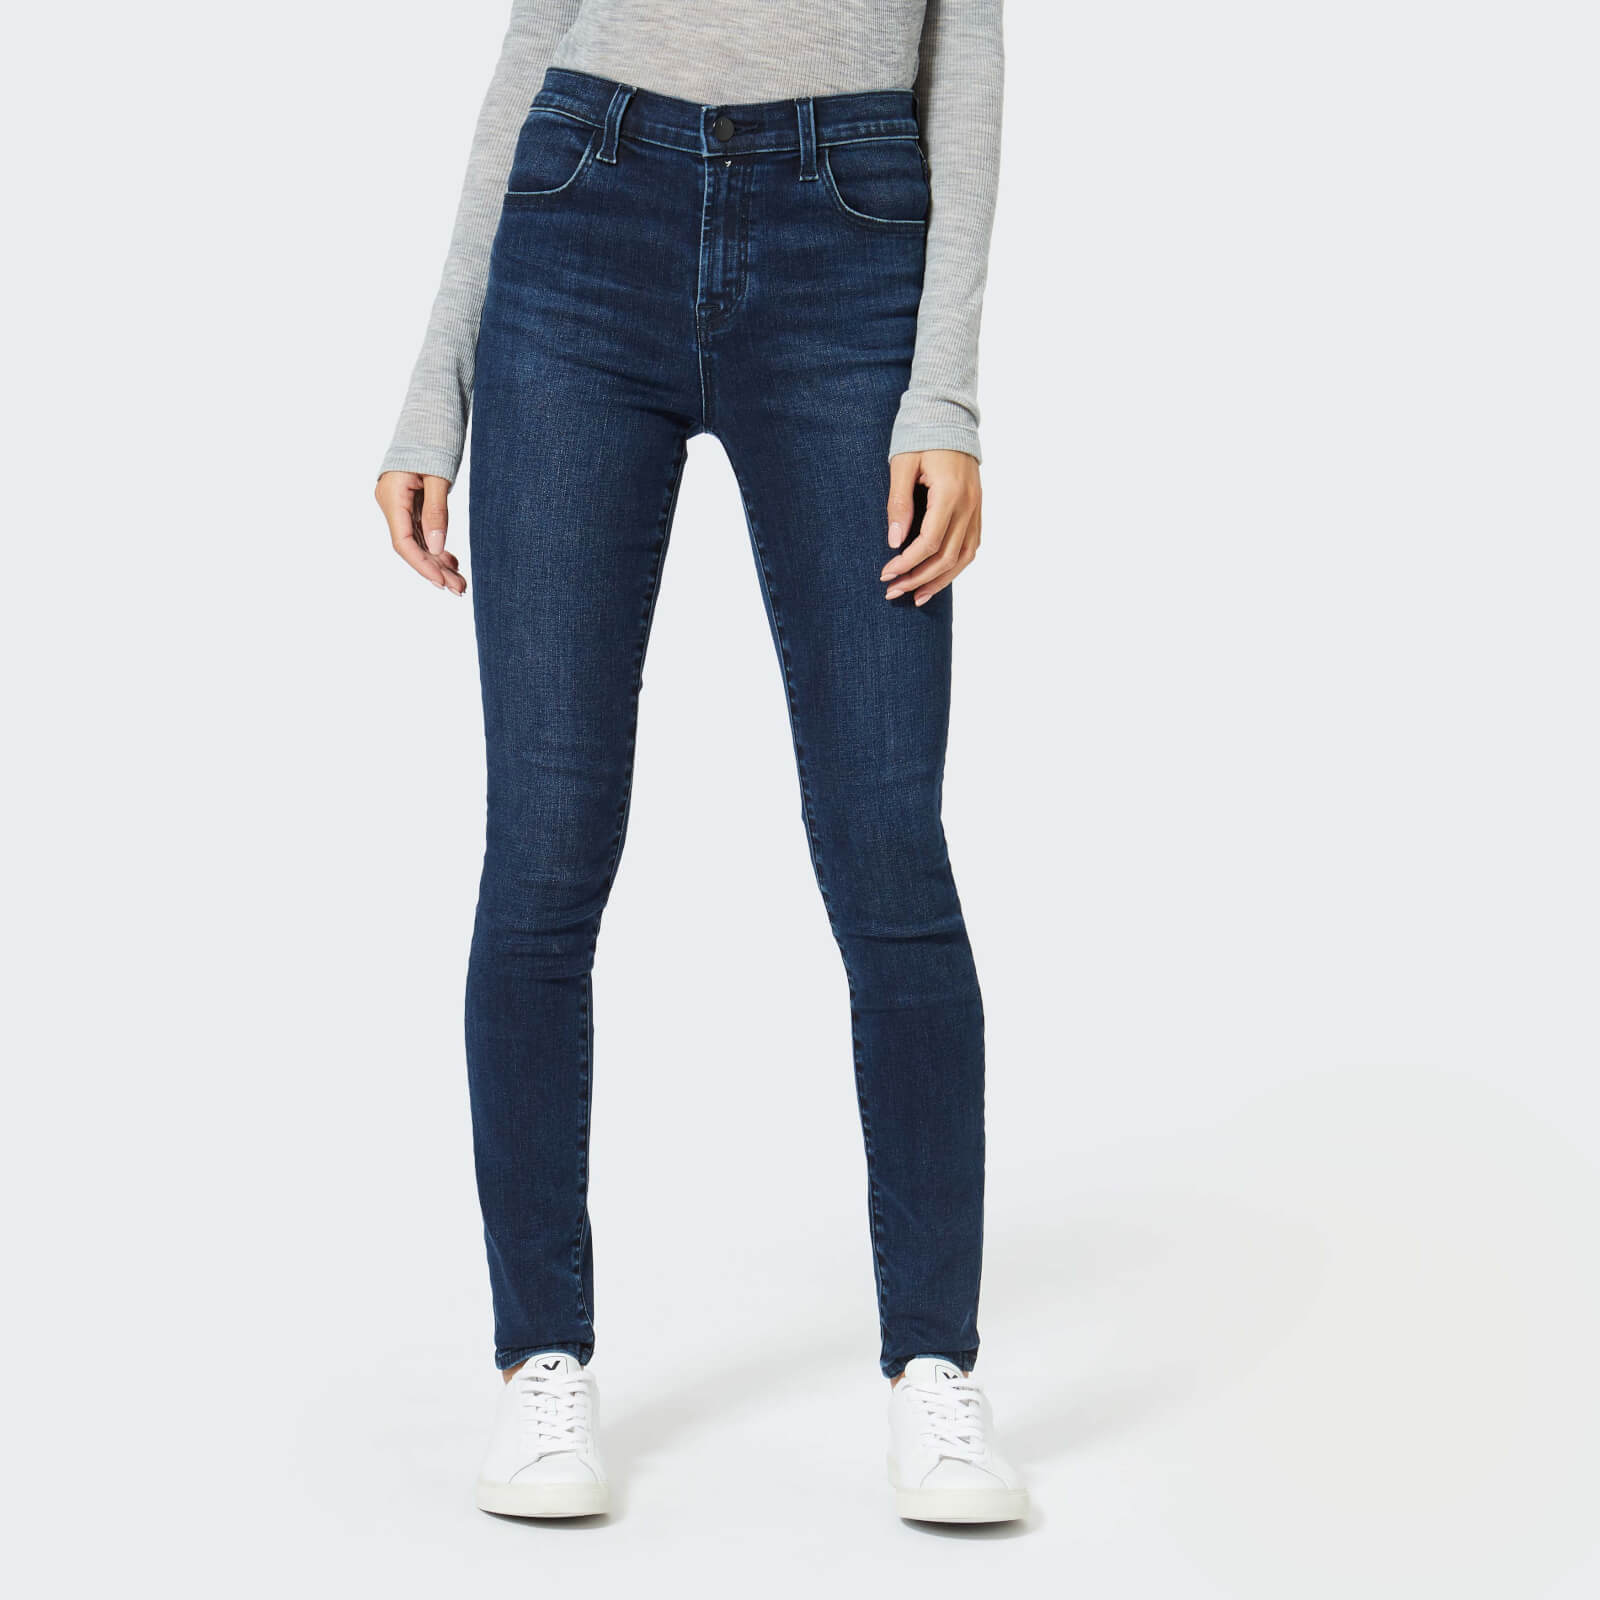 ca1ff33b9ea J Brand Women's Maria High Rise Skinny Jeans - Phased - Free UK Delivery  over £50